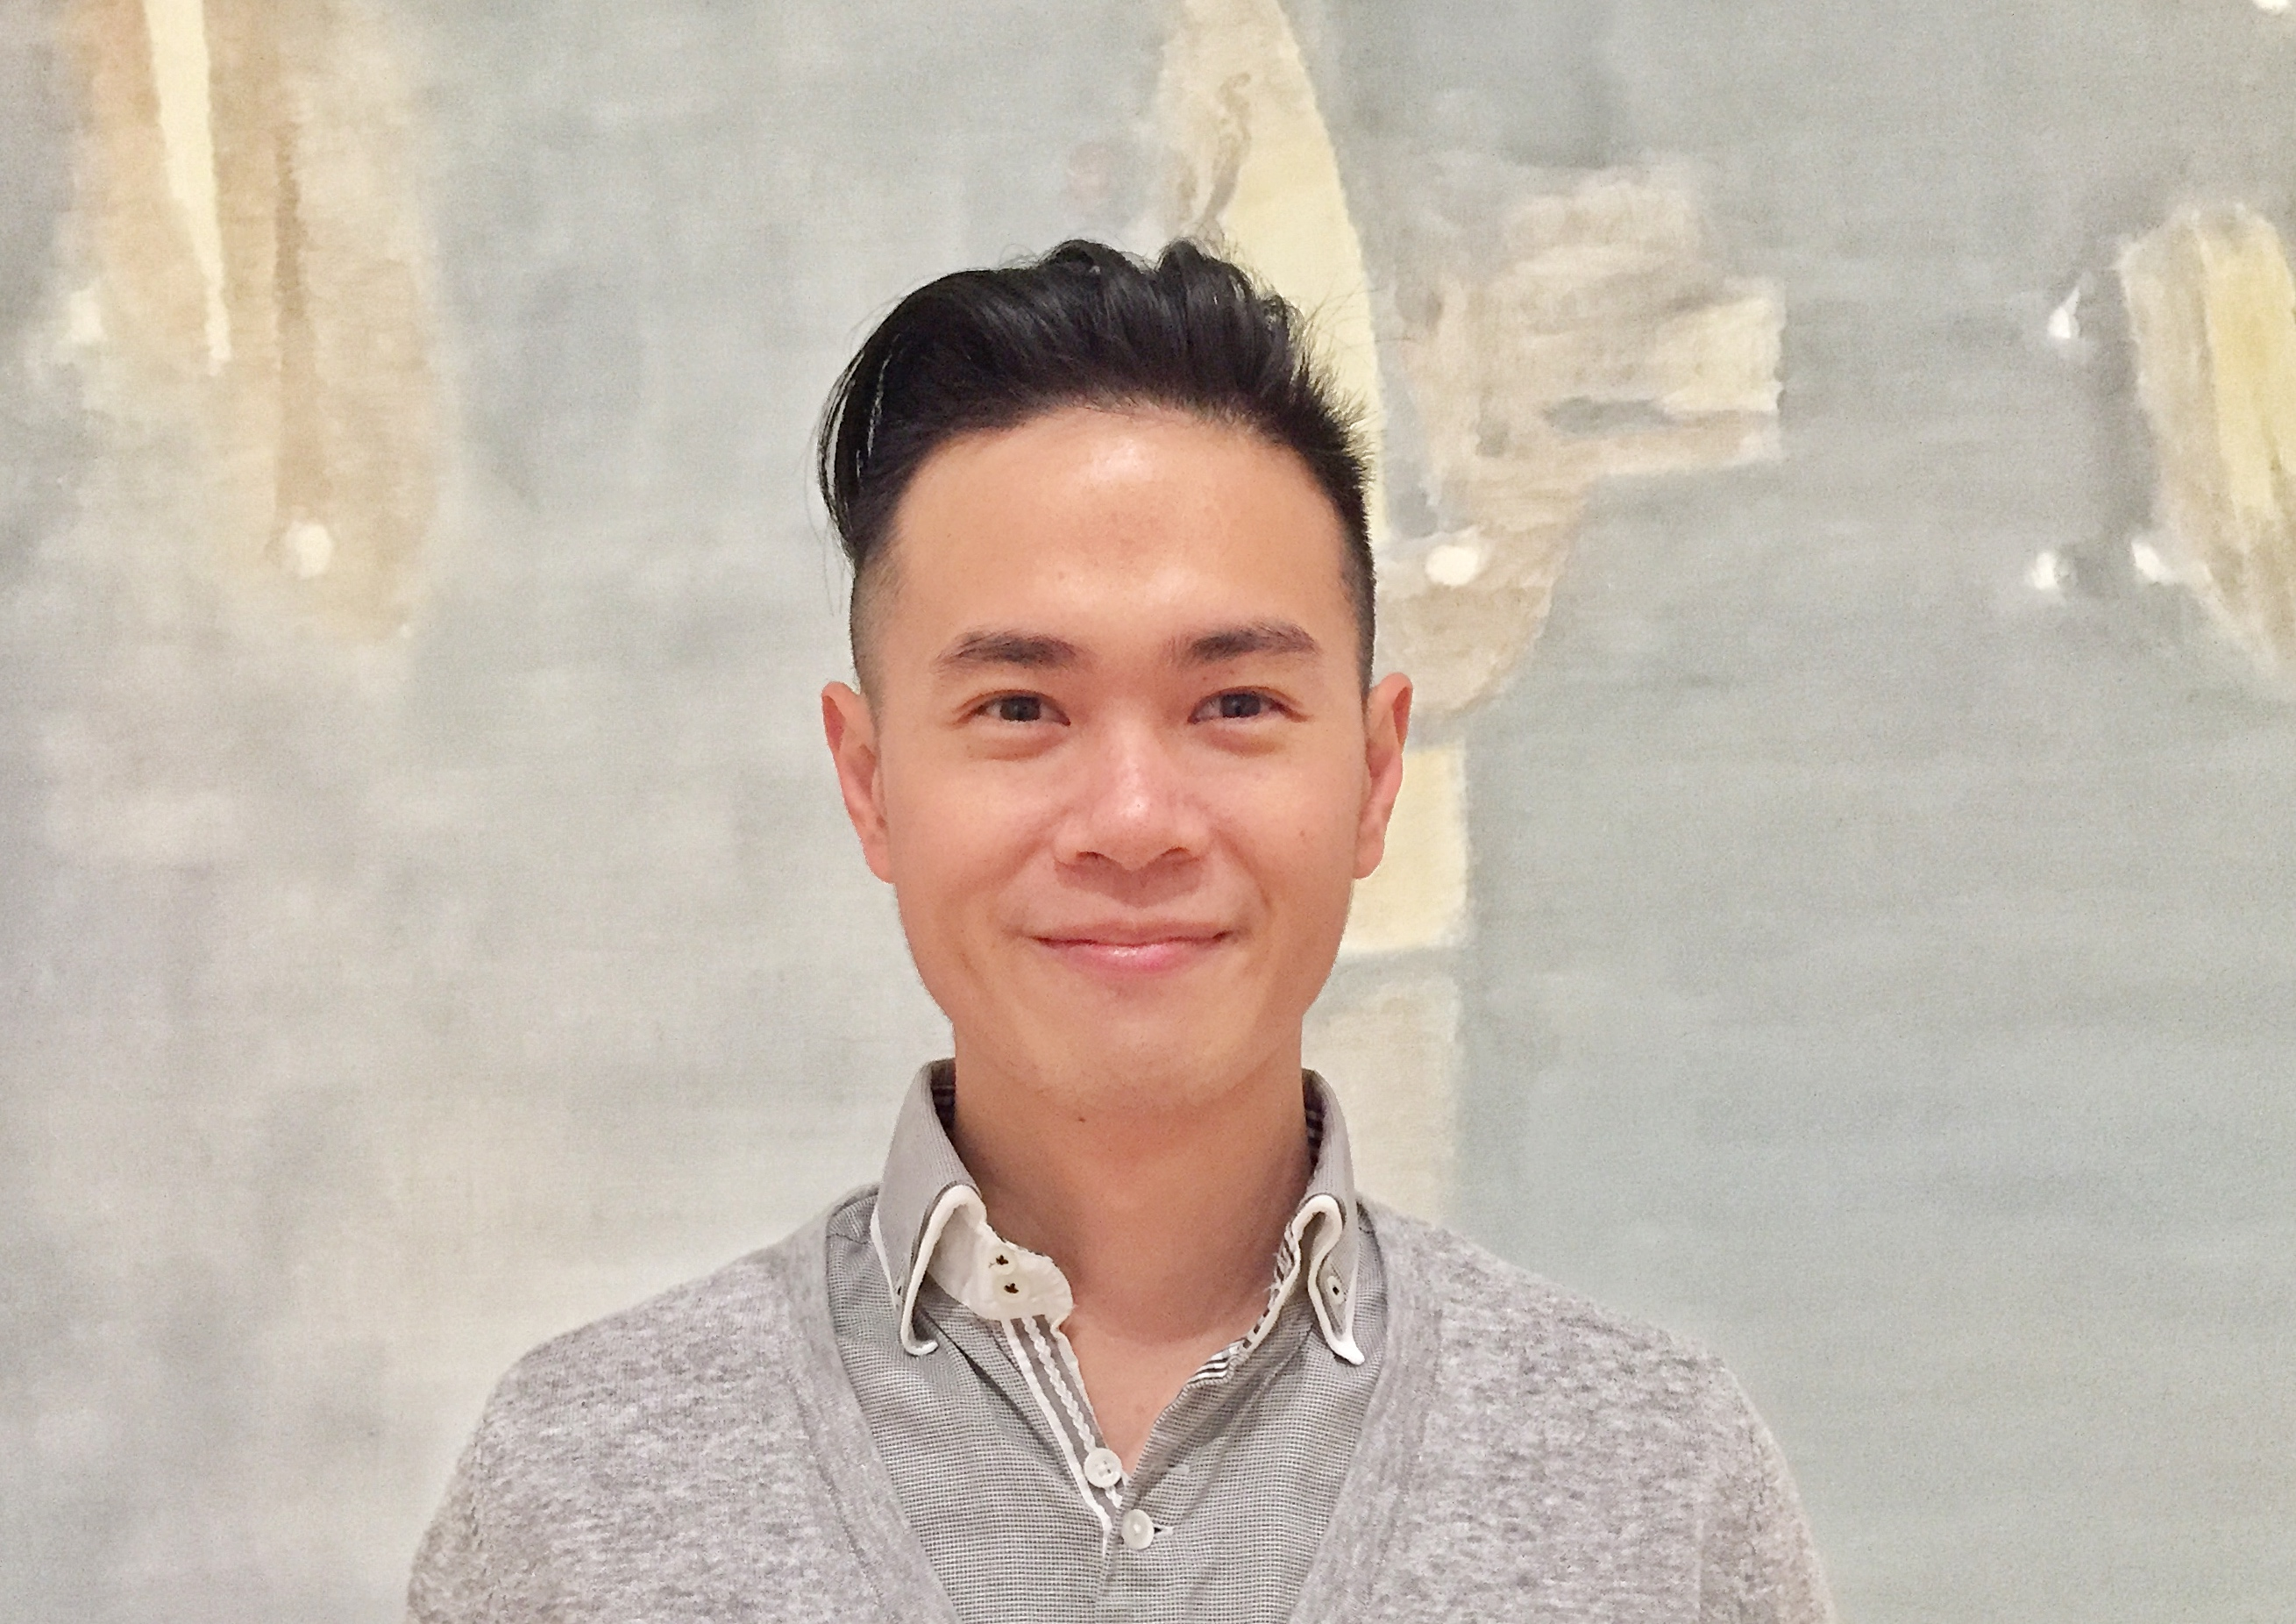 latinos in technology andy tran